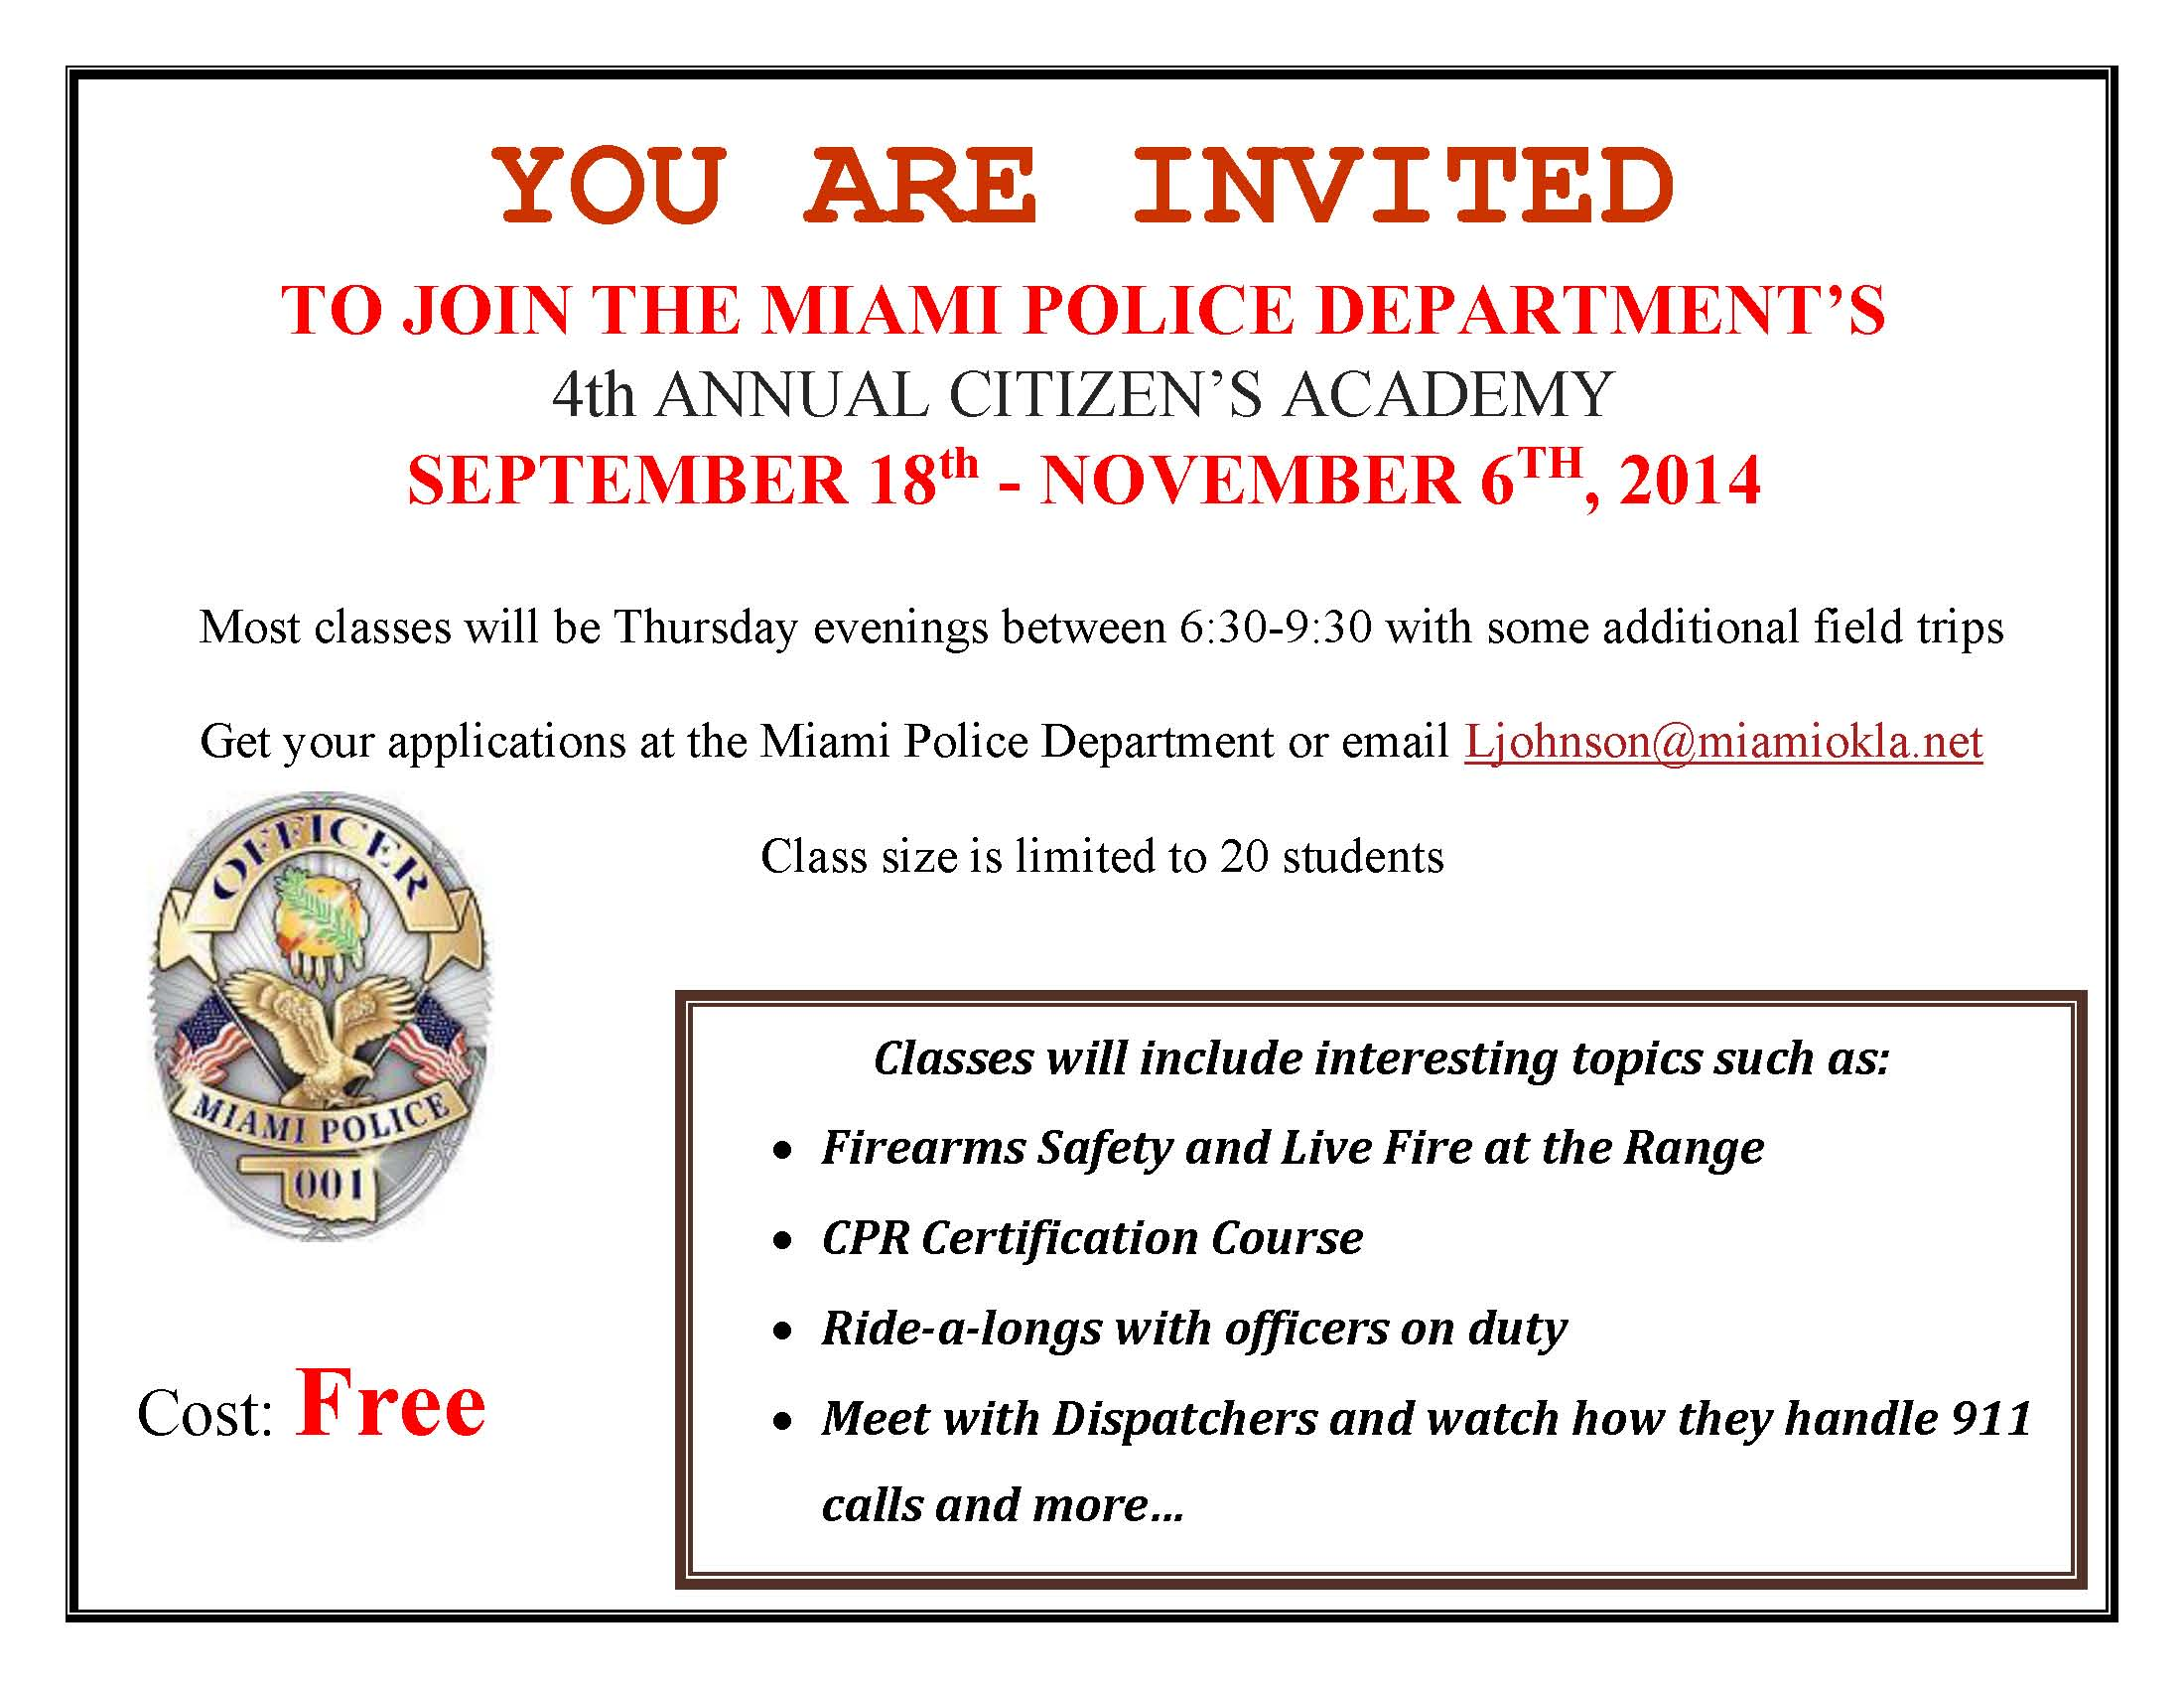 Citizens Academy Flyer